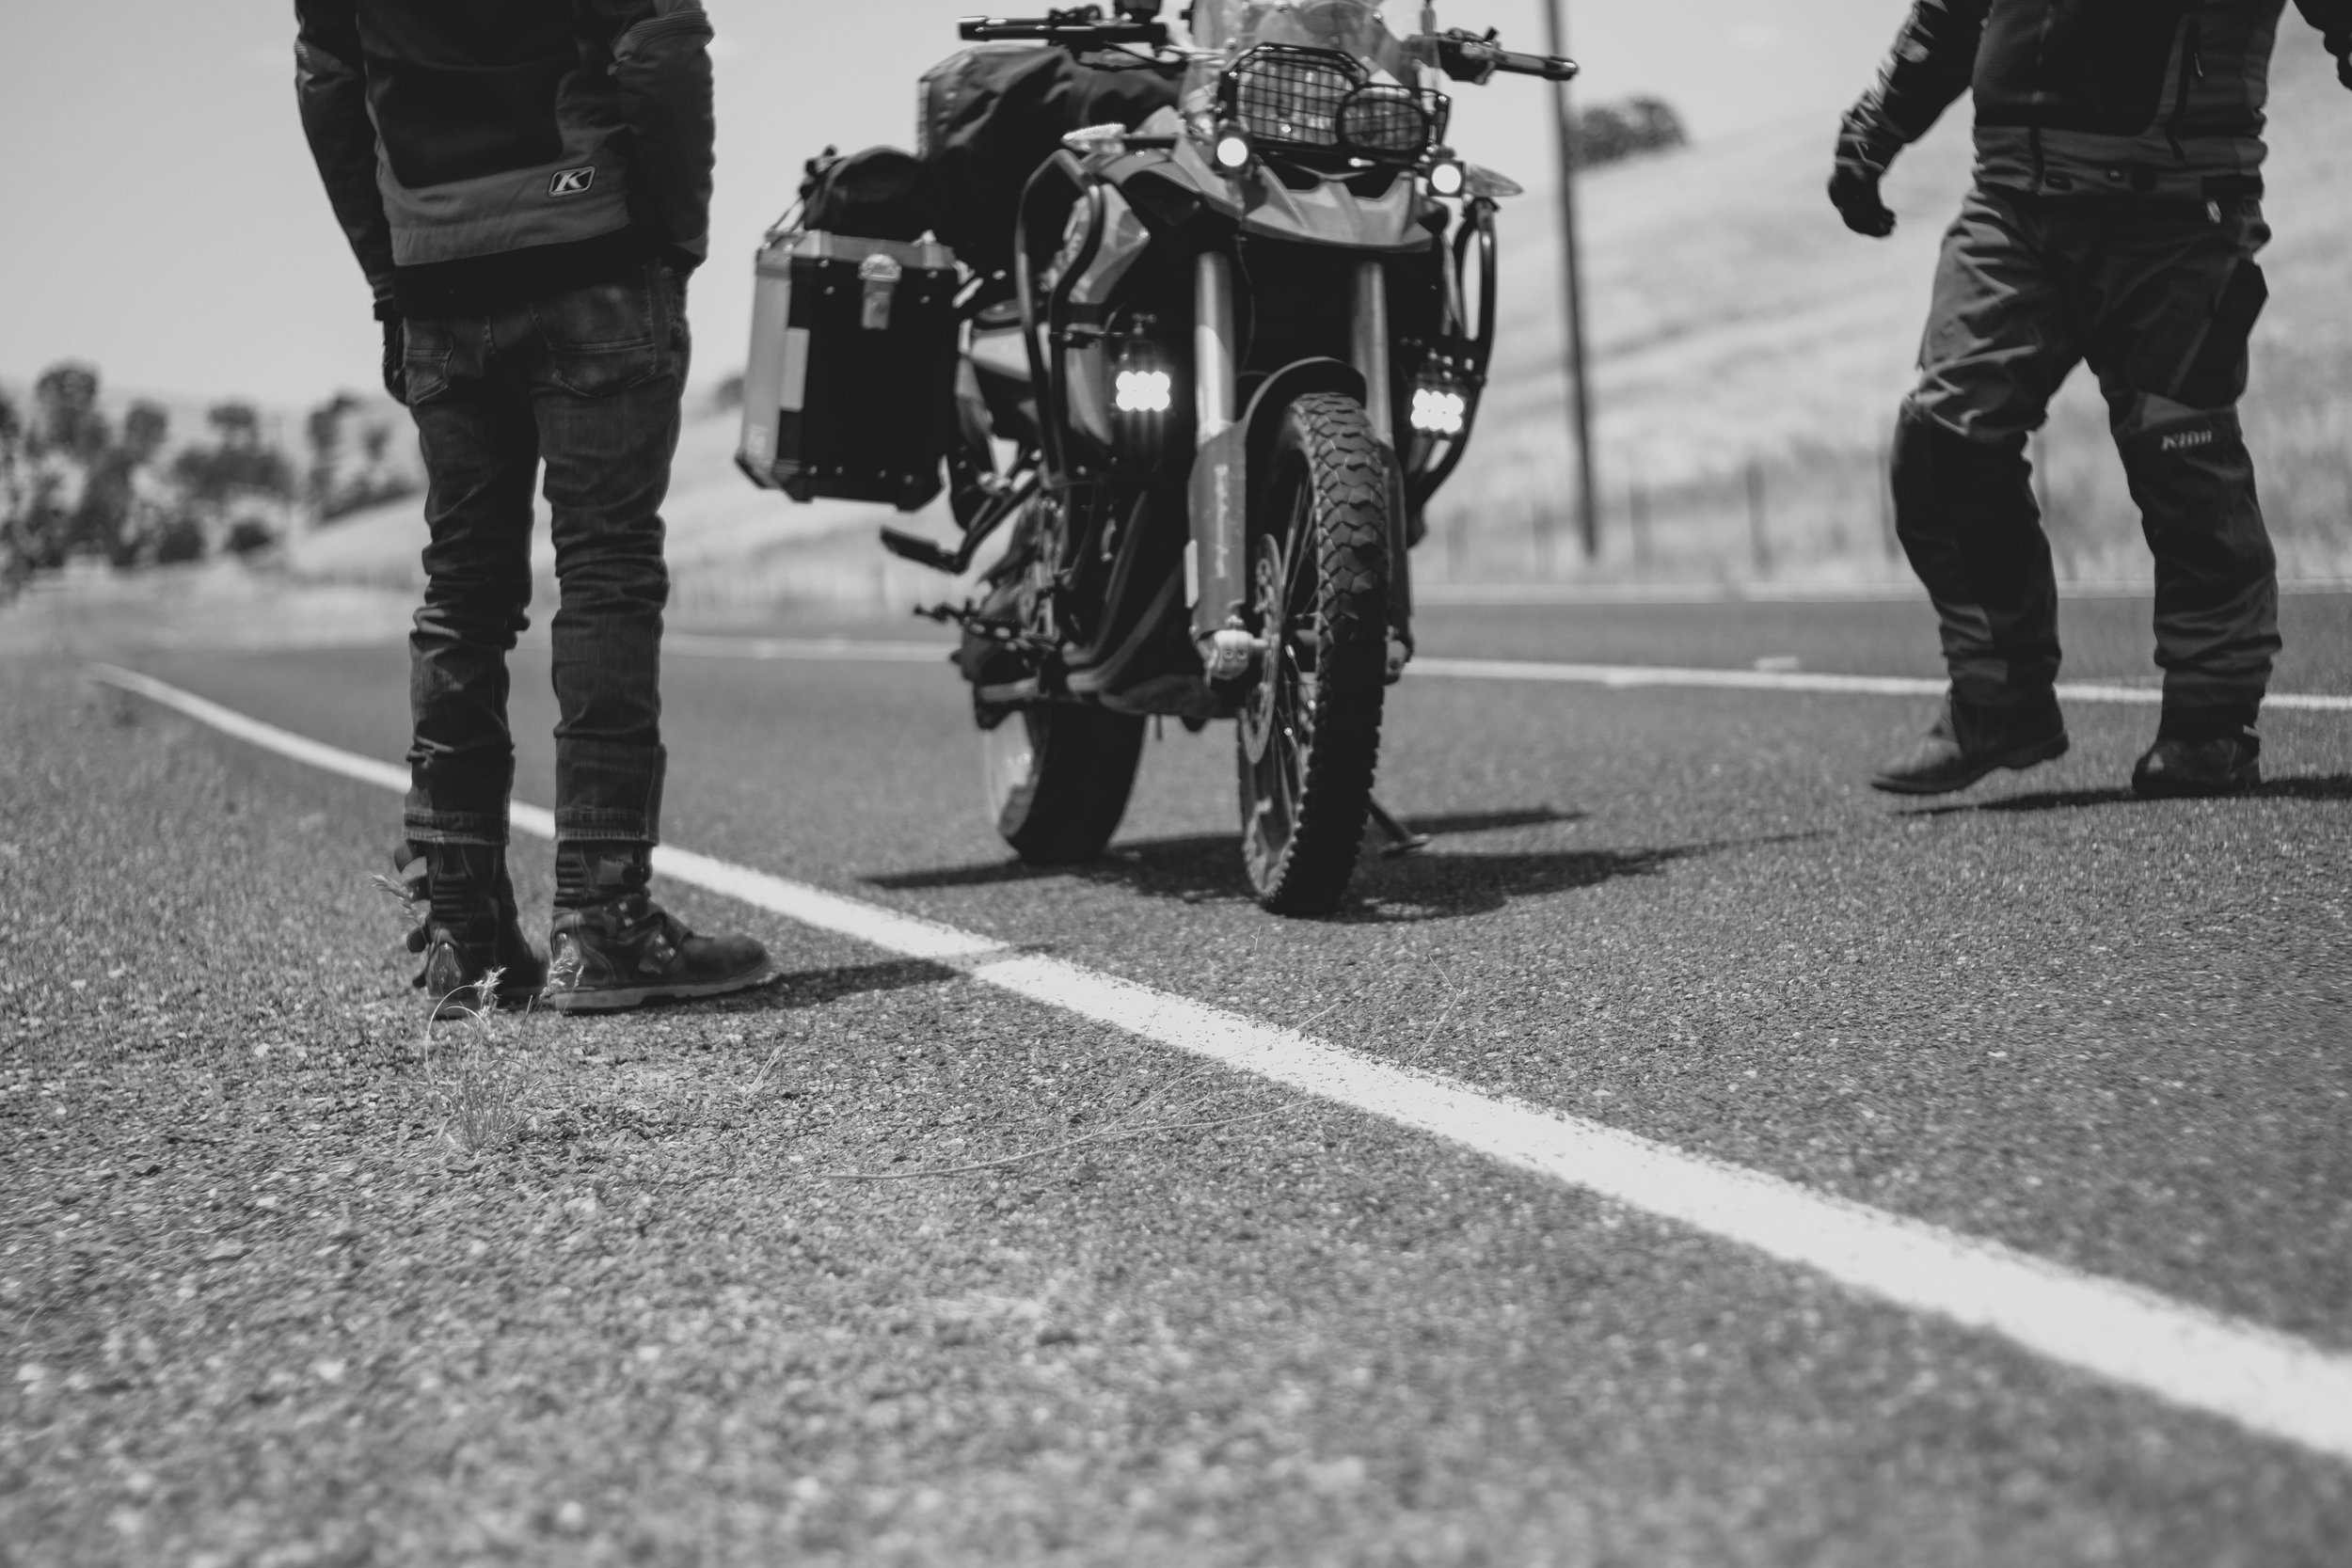 - A road takes you many directions. To new places, familiar faces, and moments in the making.